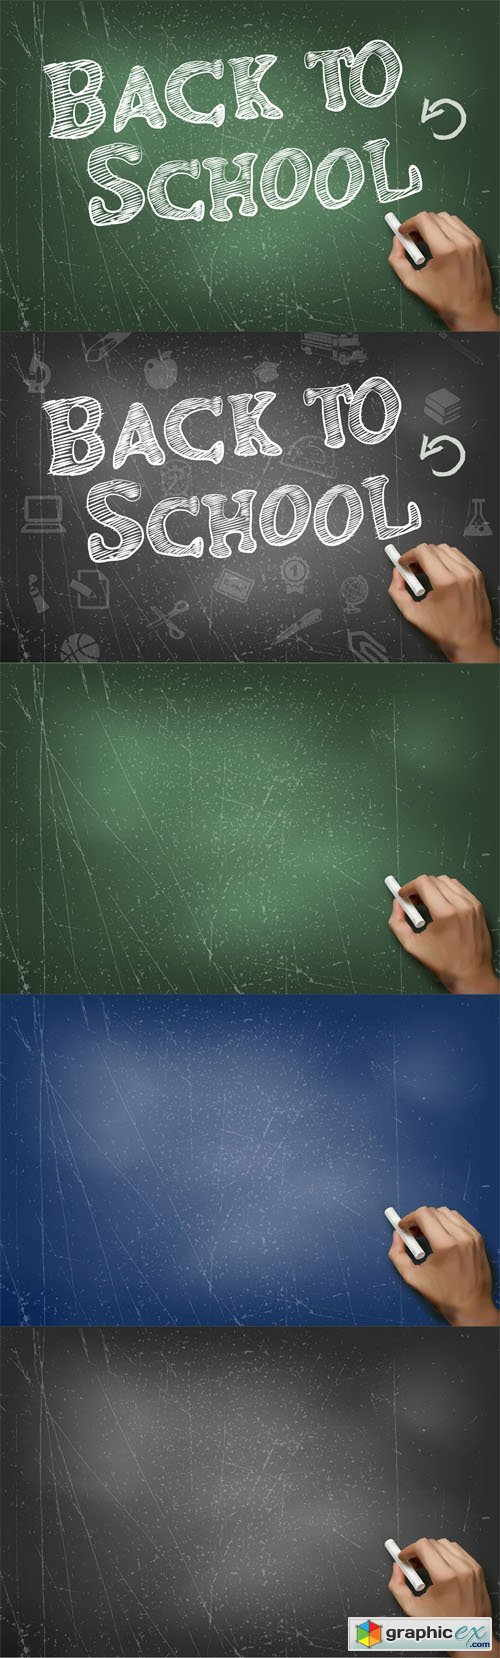 School Black Board